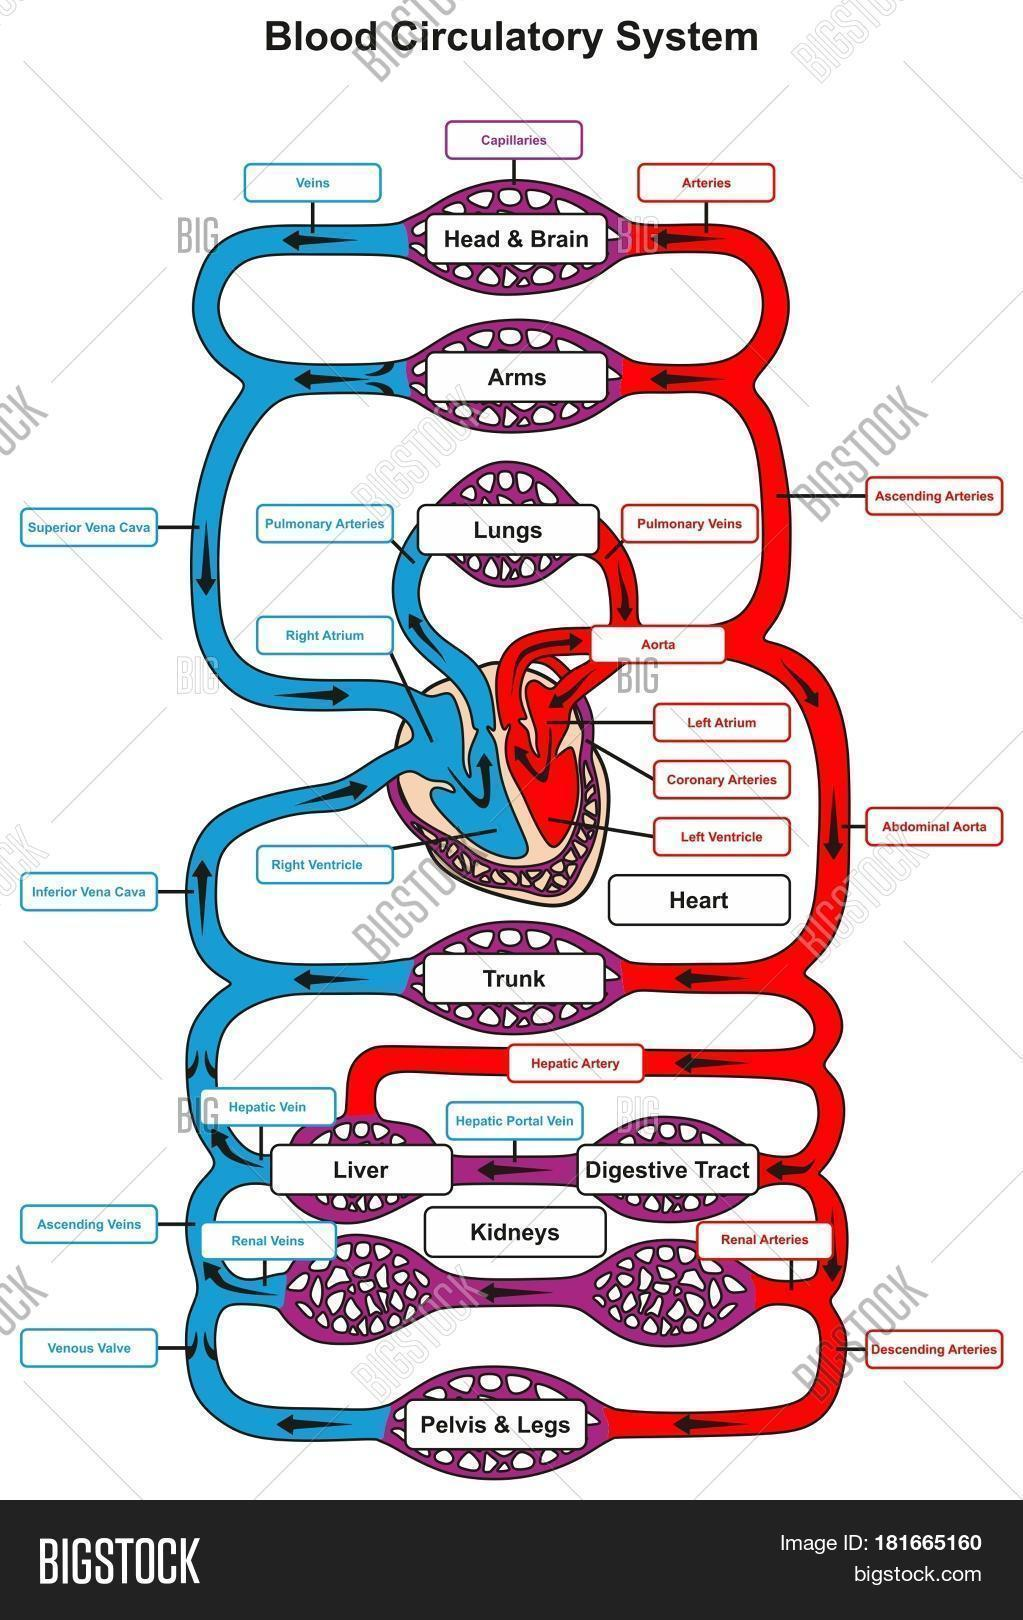 hight resolution of blood circulatory system of human body infographic diagram with heart pumping to all other organs and